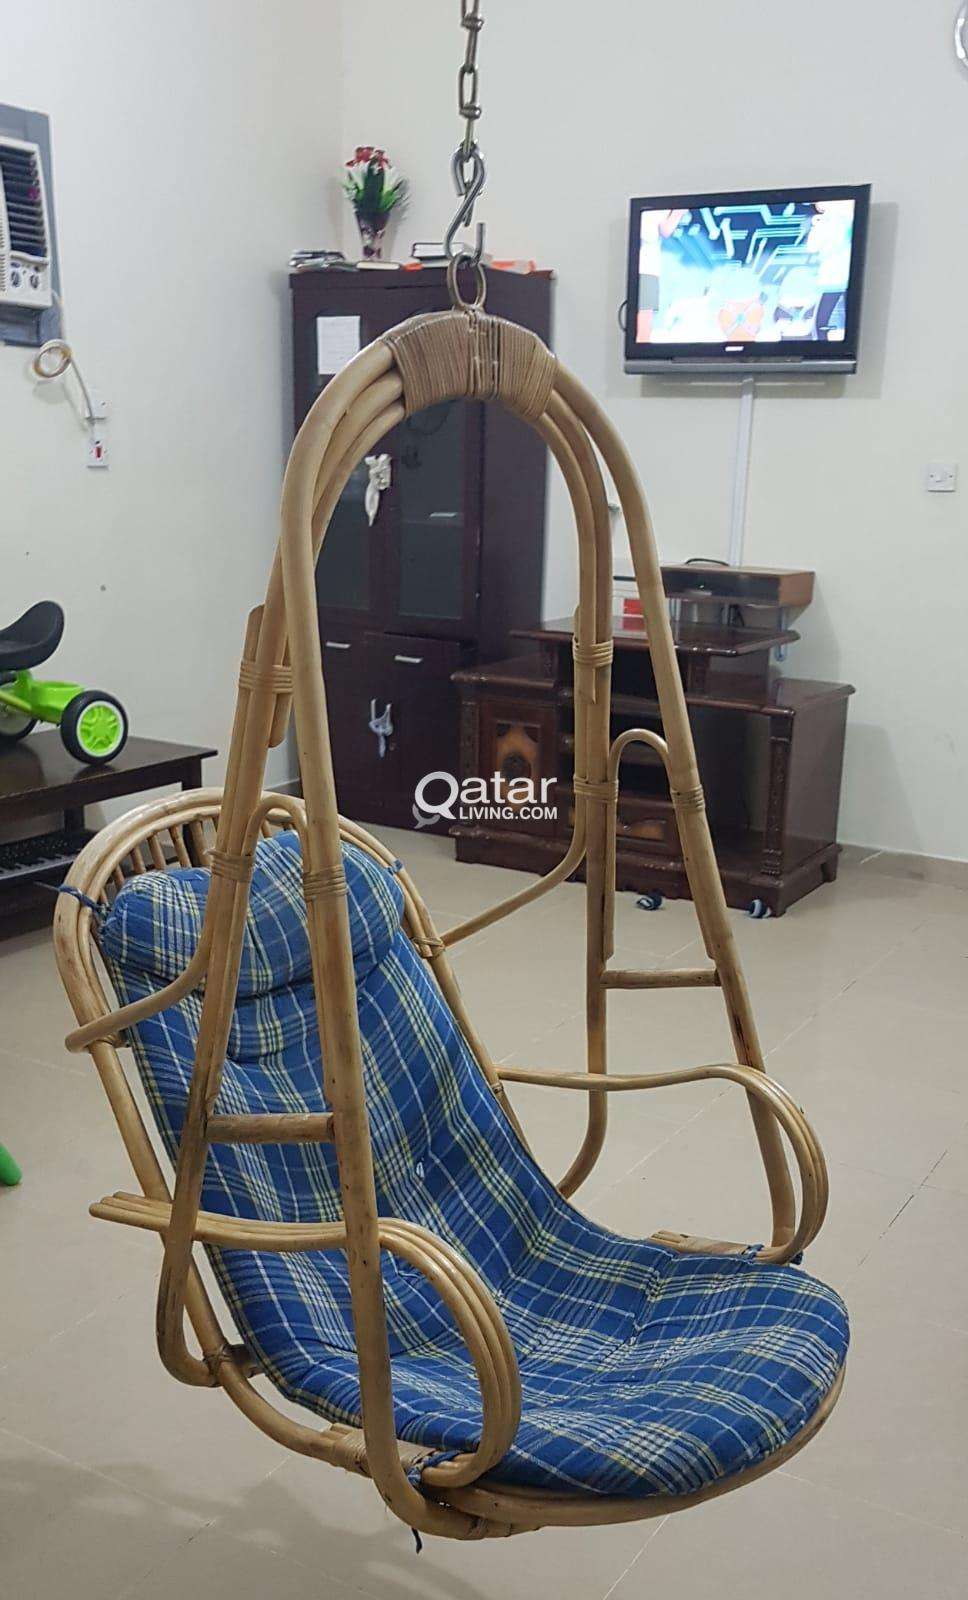 hanging chair qatar stakmore folding chairs fruitwood swing living title information ceiling in very